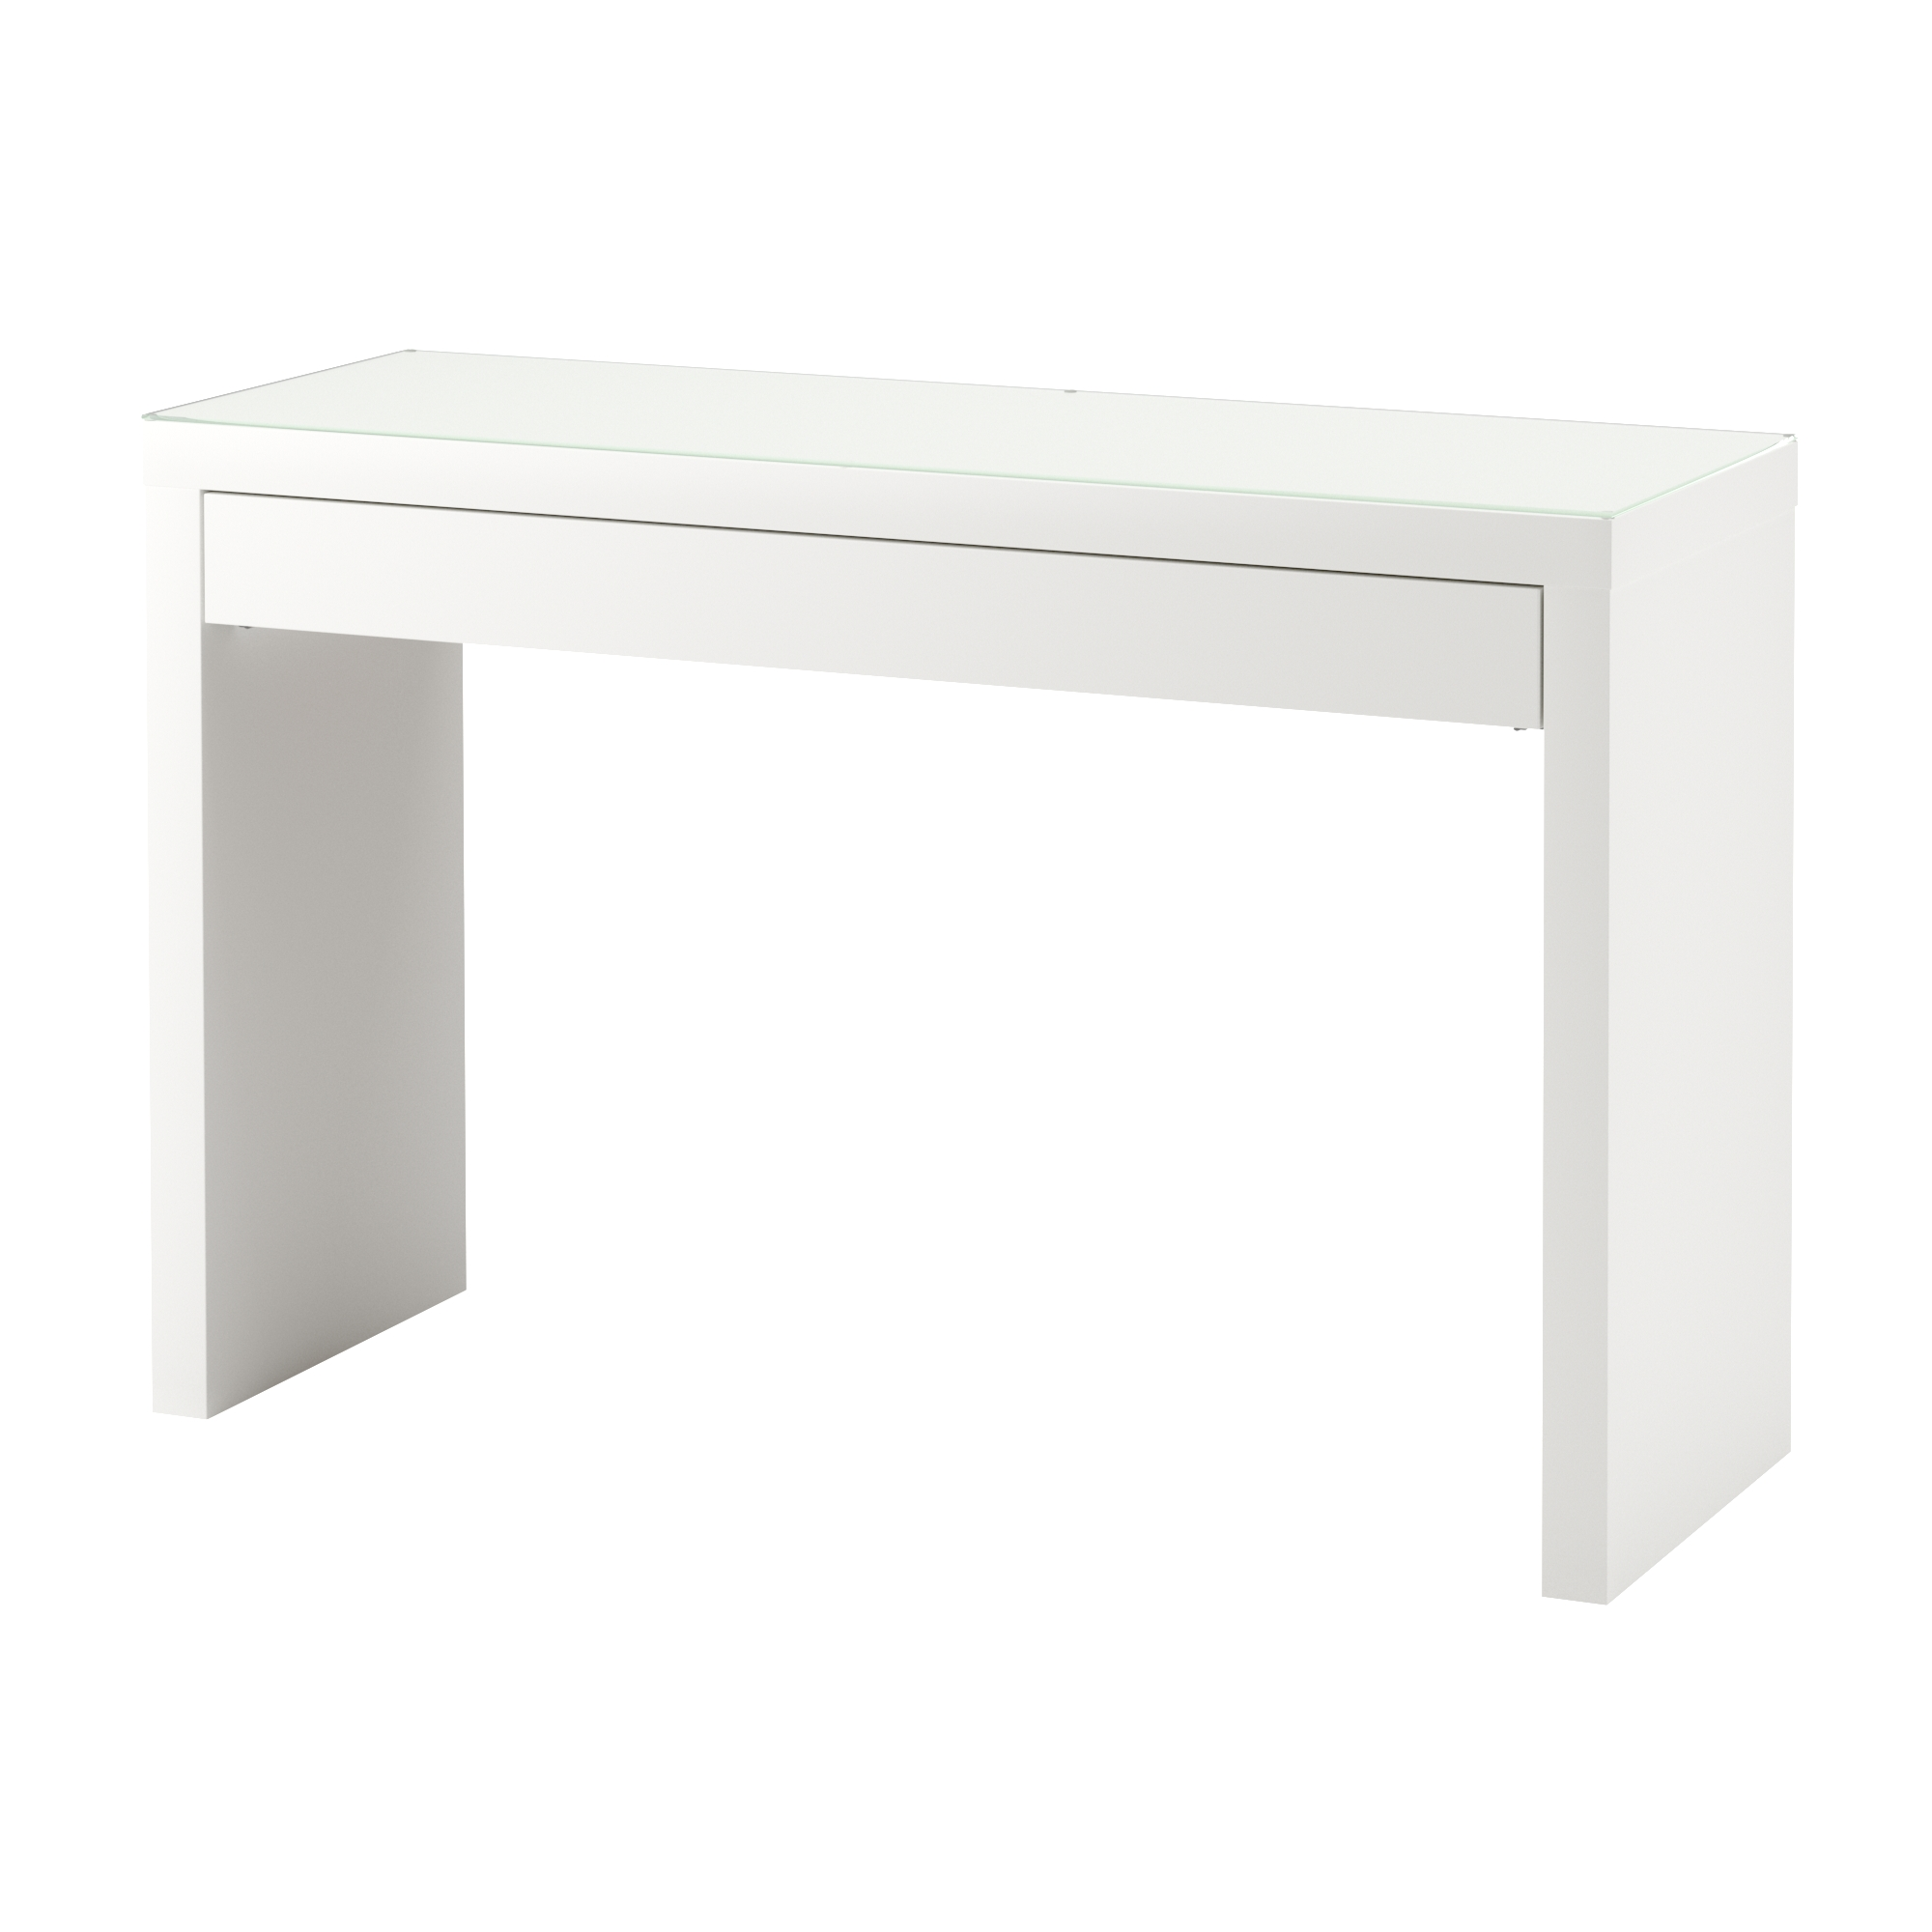 Admirable Dressing Table Malm White Uwap Interior Chair Design Uwaporg